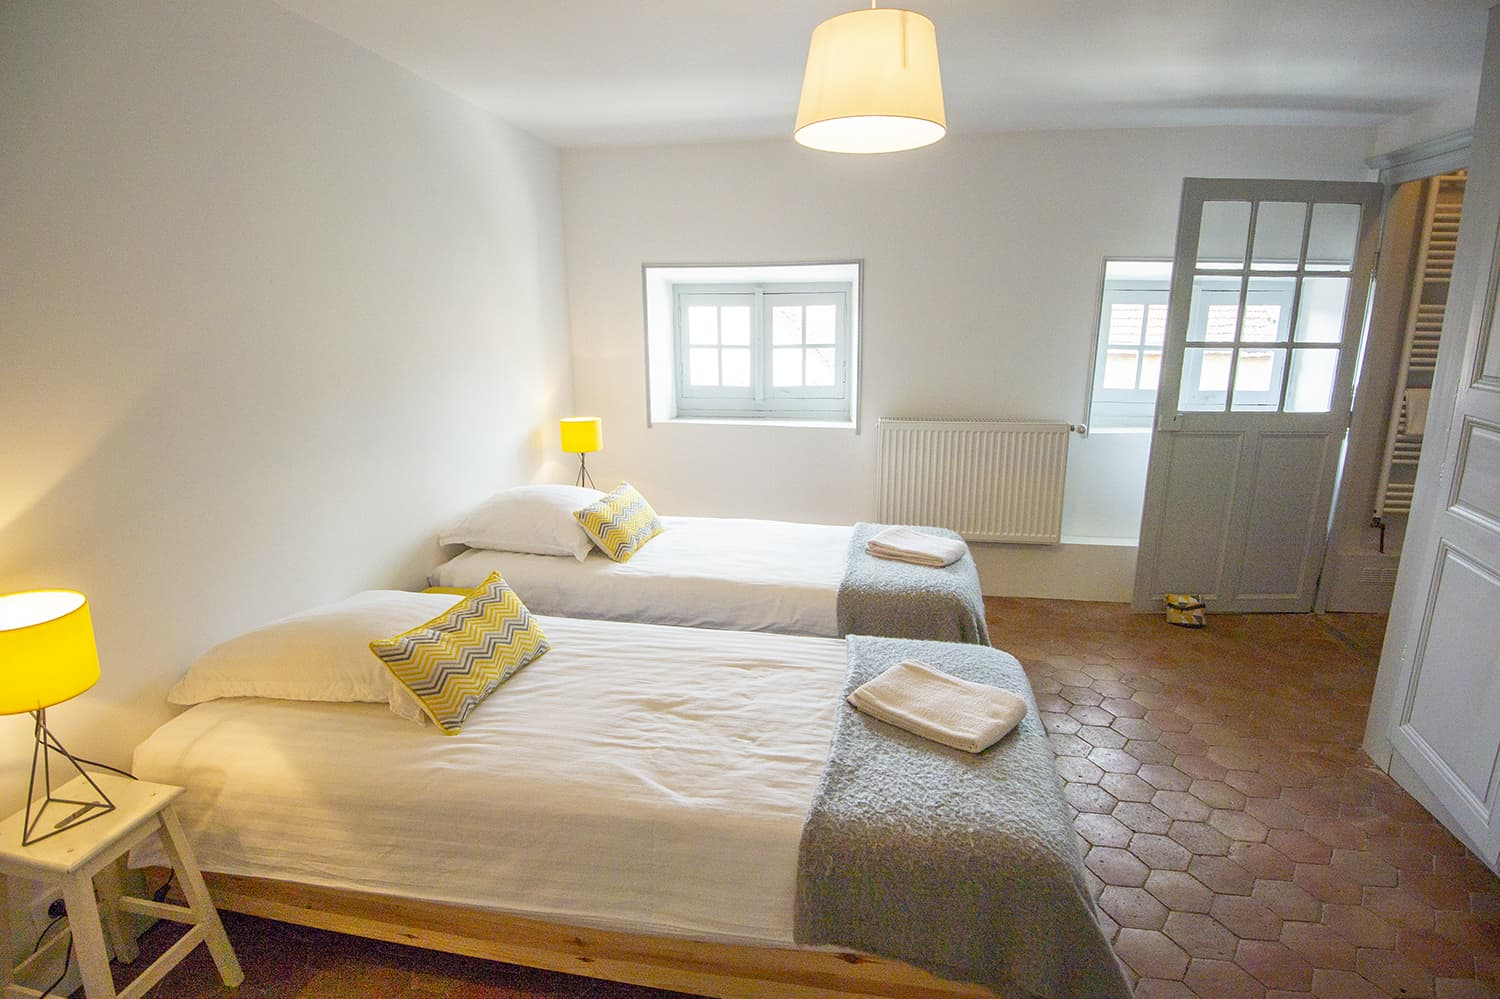 Bedroom in Bourgogne-Franche-Comté self-catering accommodation